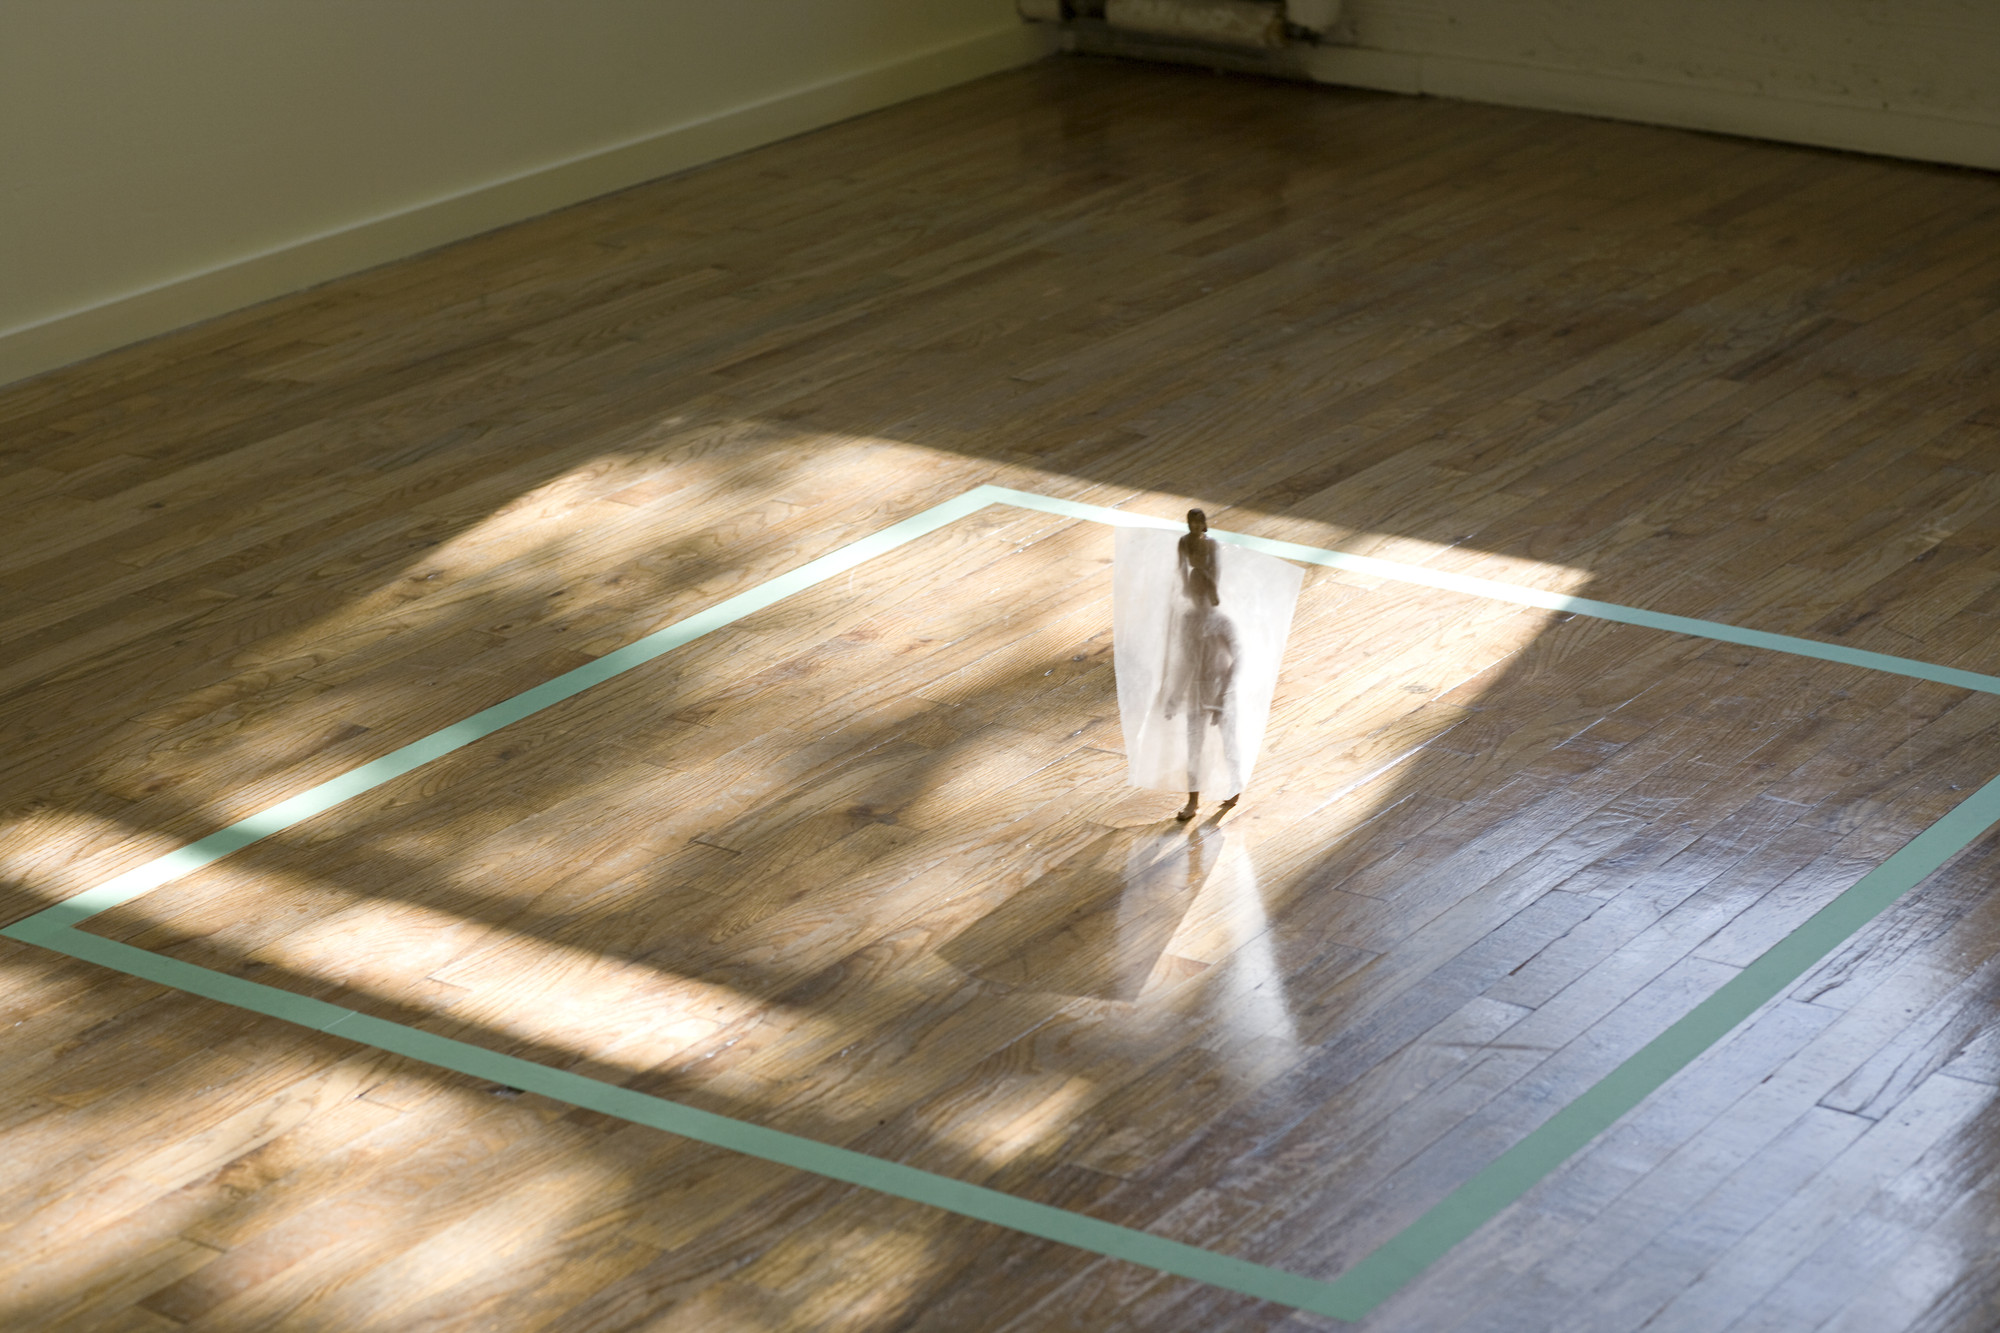 Installation view of Francis Alÿs: A Story of Deception at MoMA PS1, May 4–September 12, 2011. Photo: Matthew Septimus